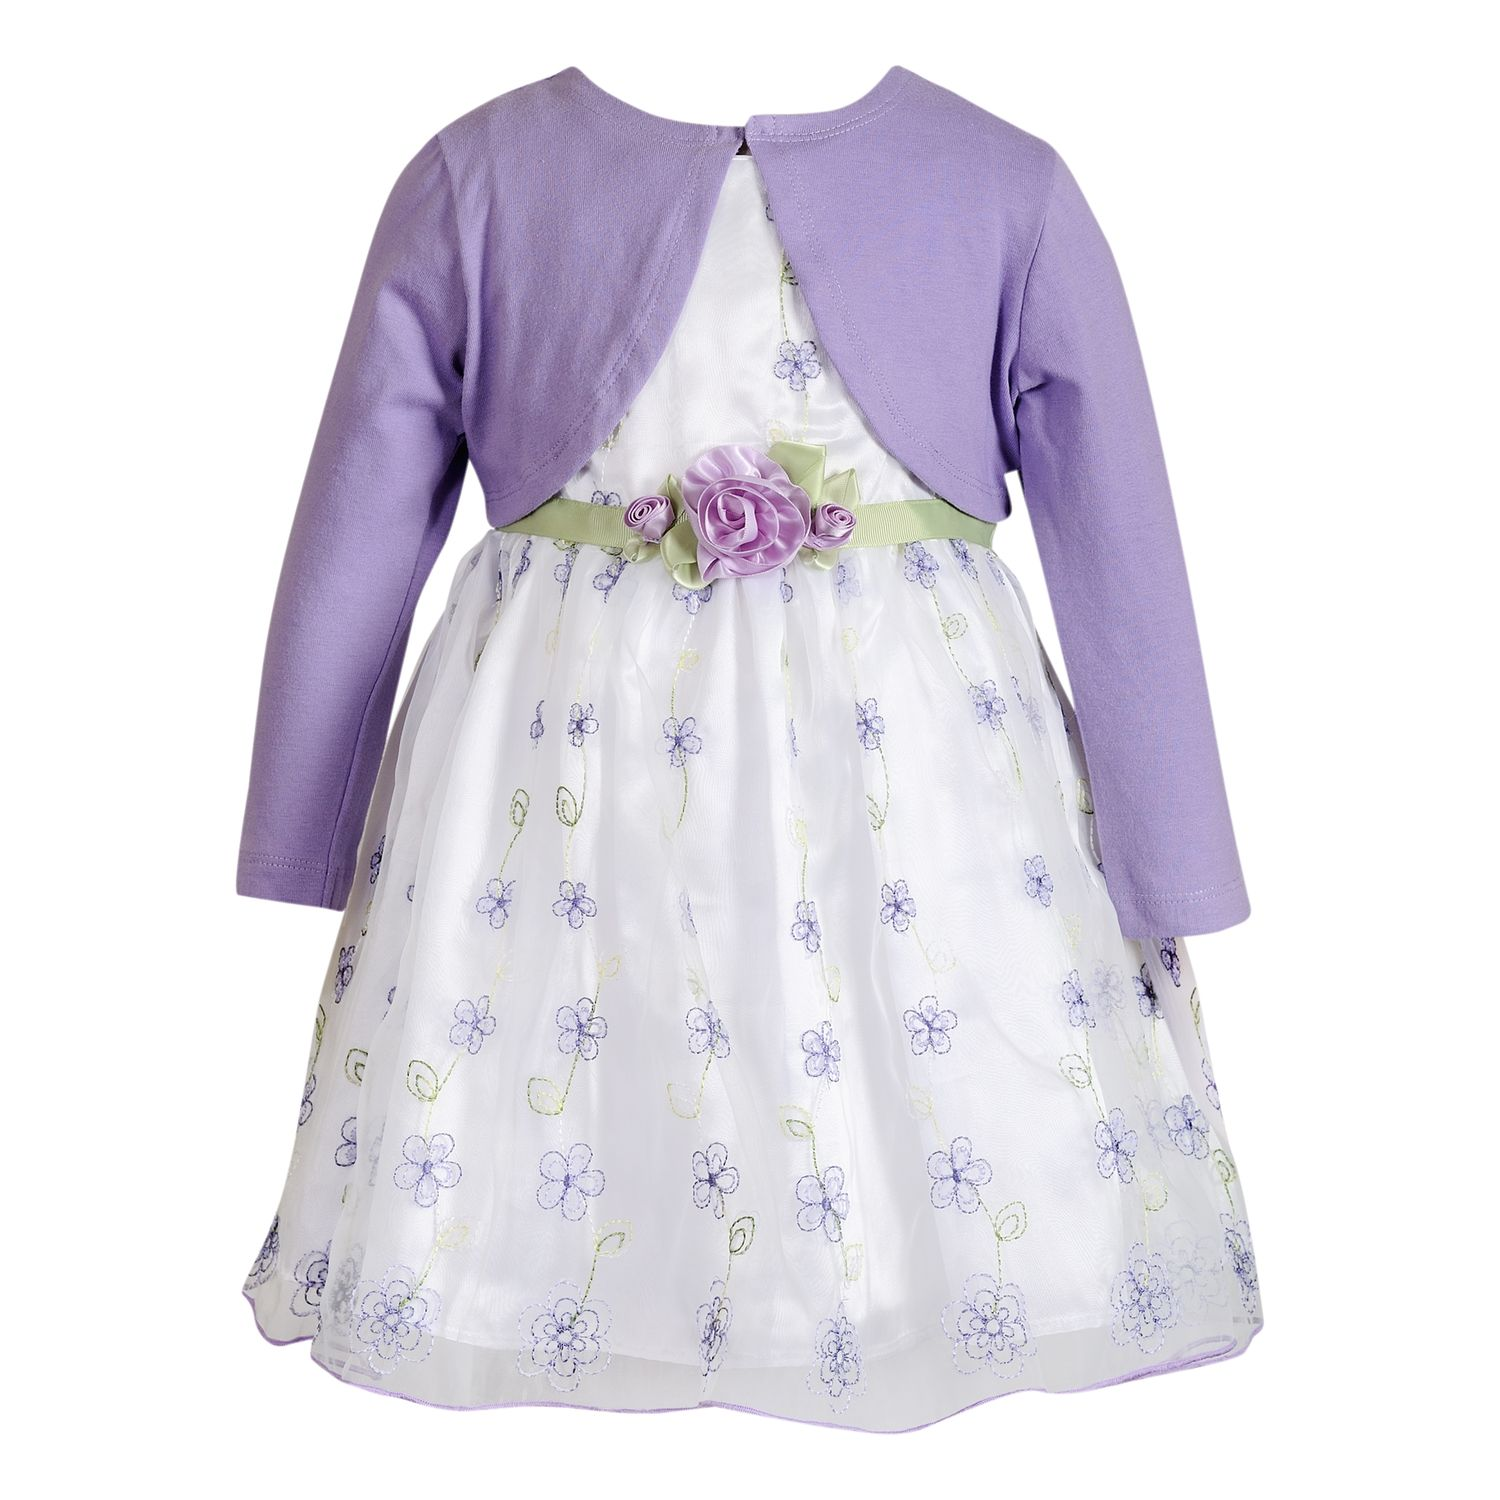 Toddler Girls Dressy Dresses